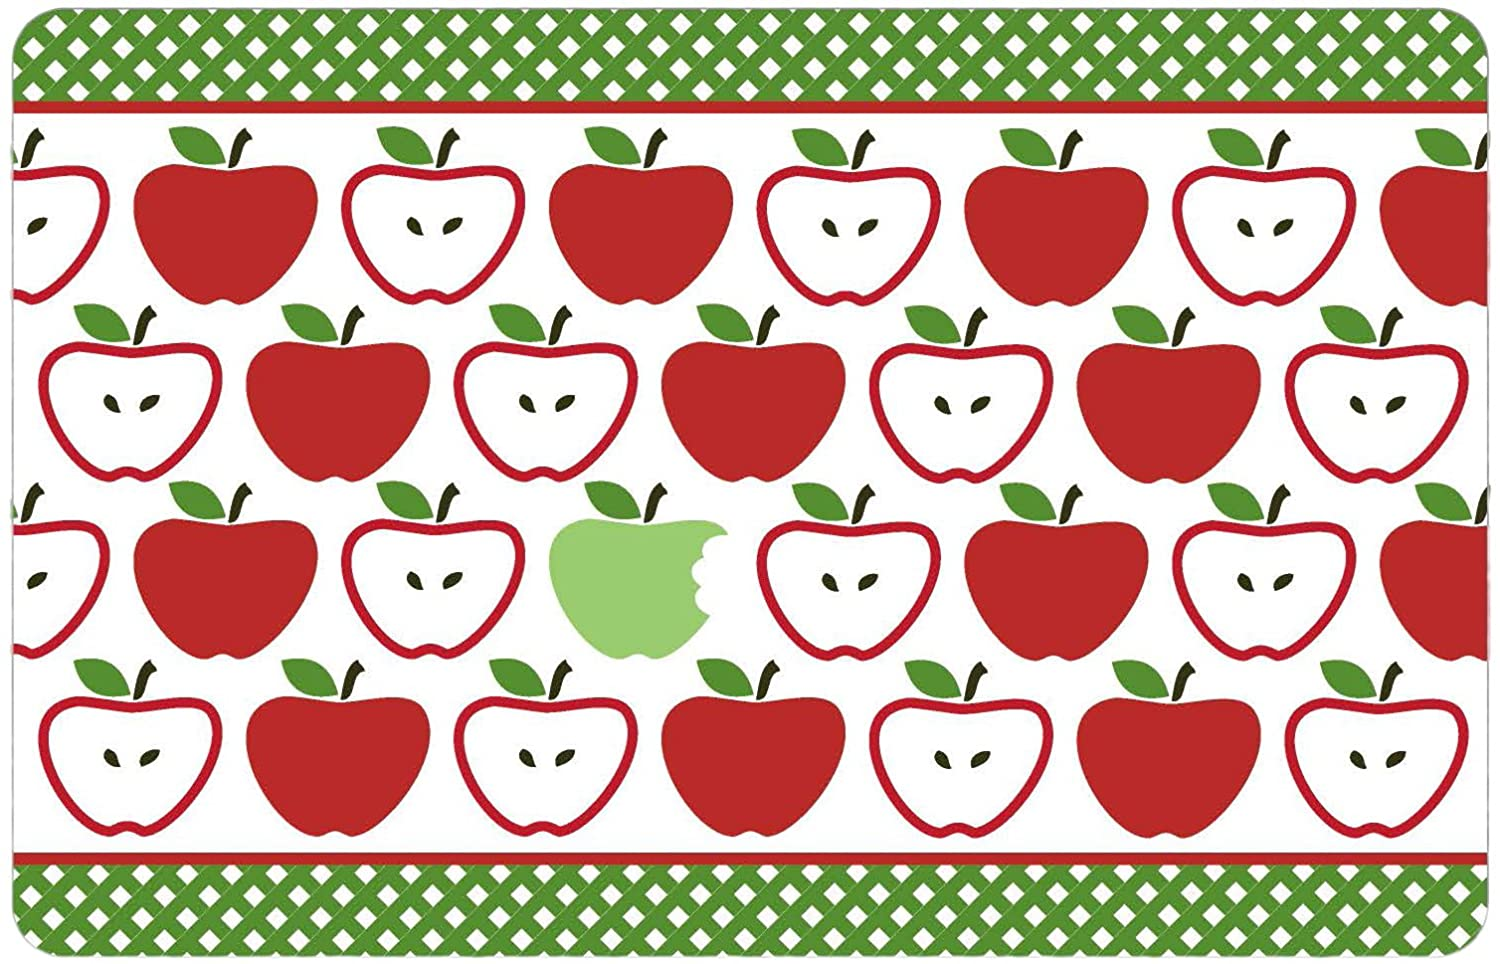 Apples Floor Mat Gourmet Club Anti-Slip Printed Kitchen Rug 18x28